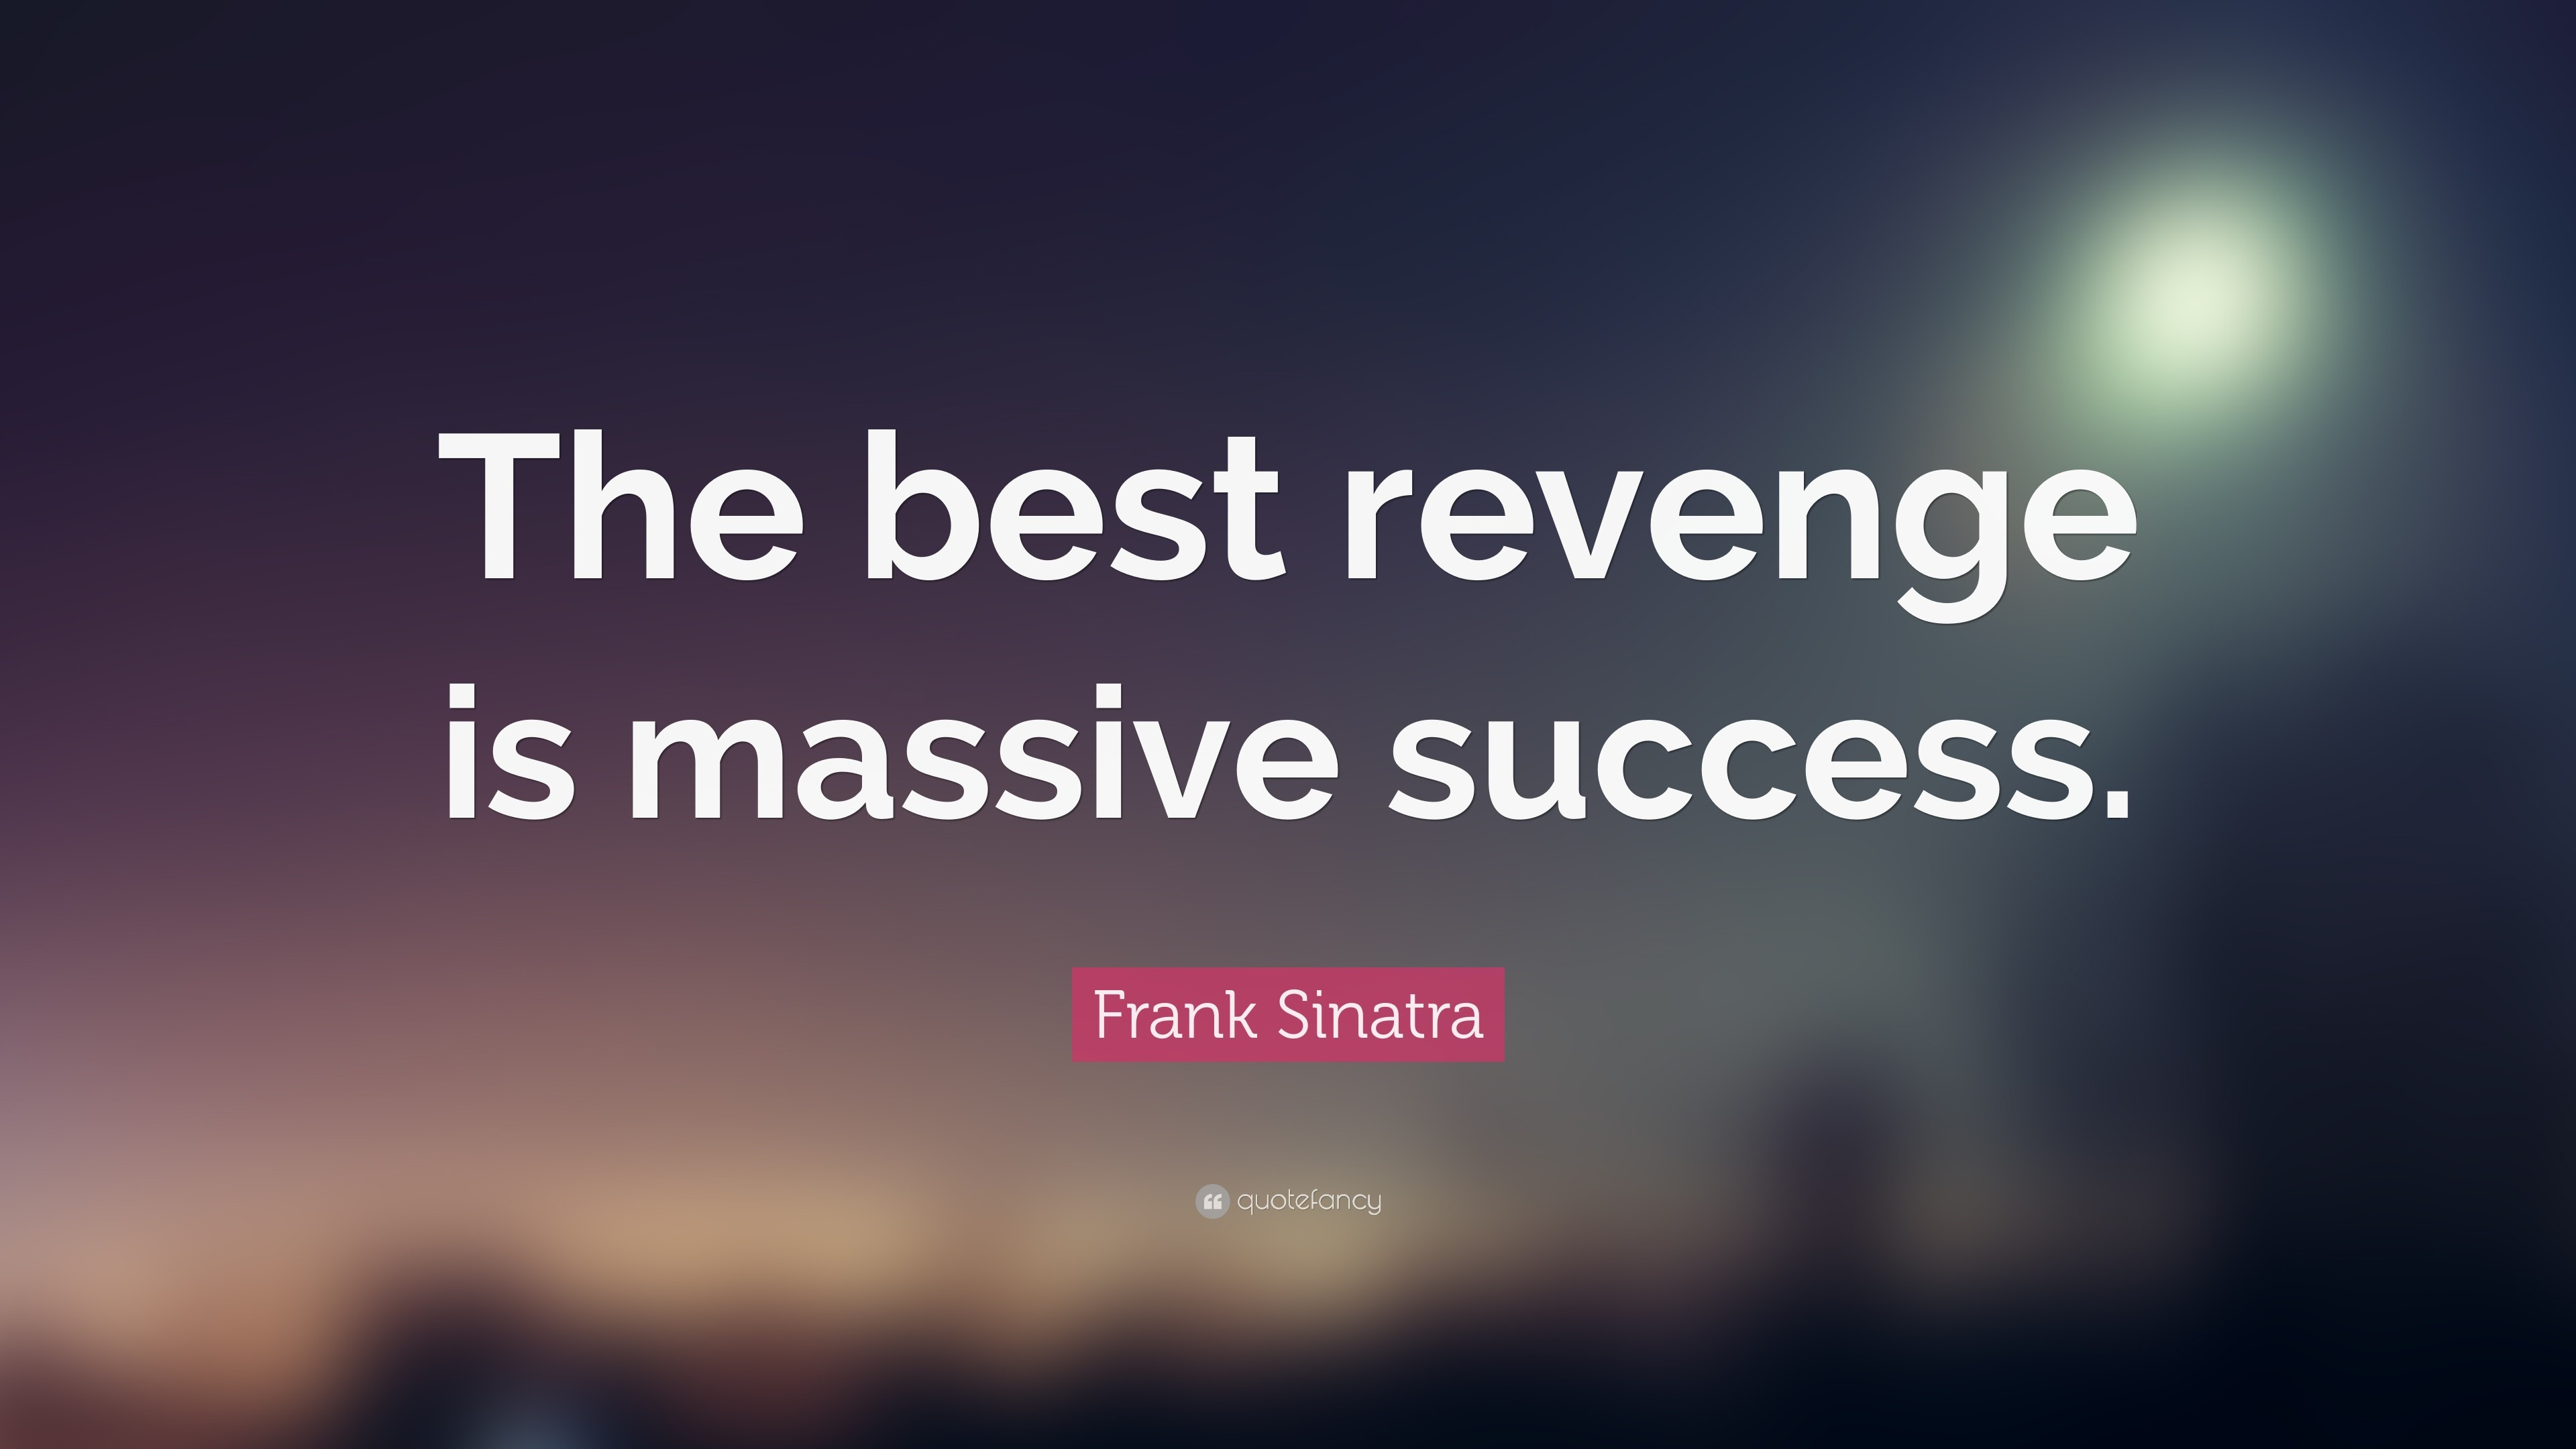 3840x2160 best success quotes wallpaper, Famous best success quotes wallpaper,  Popular best success quotes wallpaper